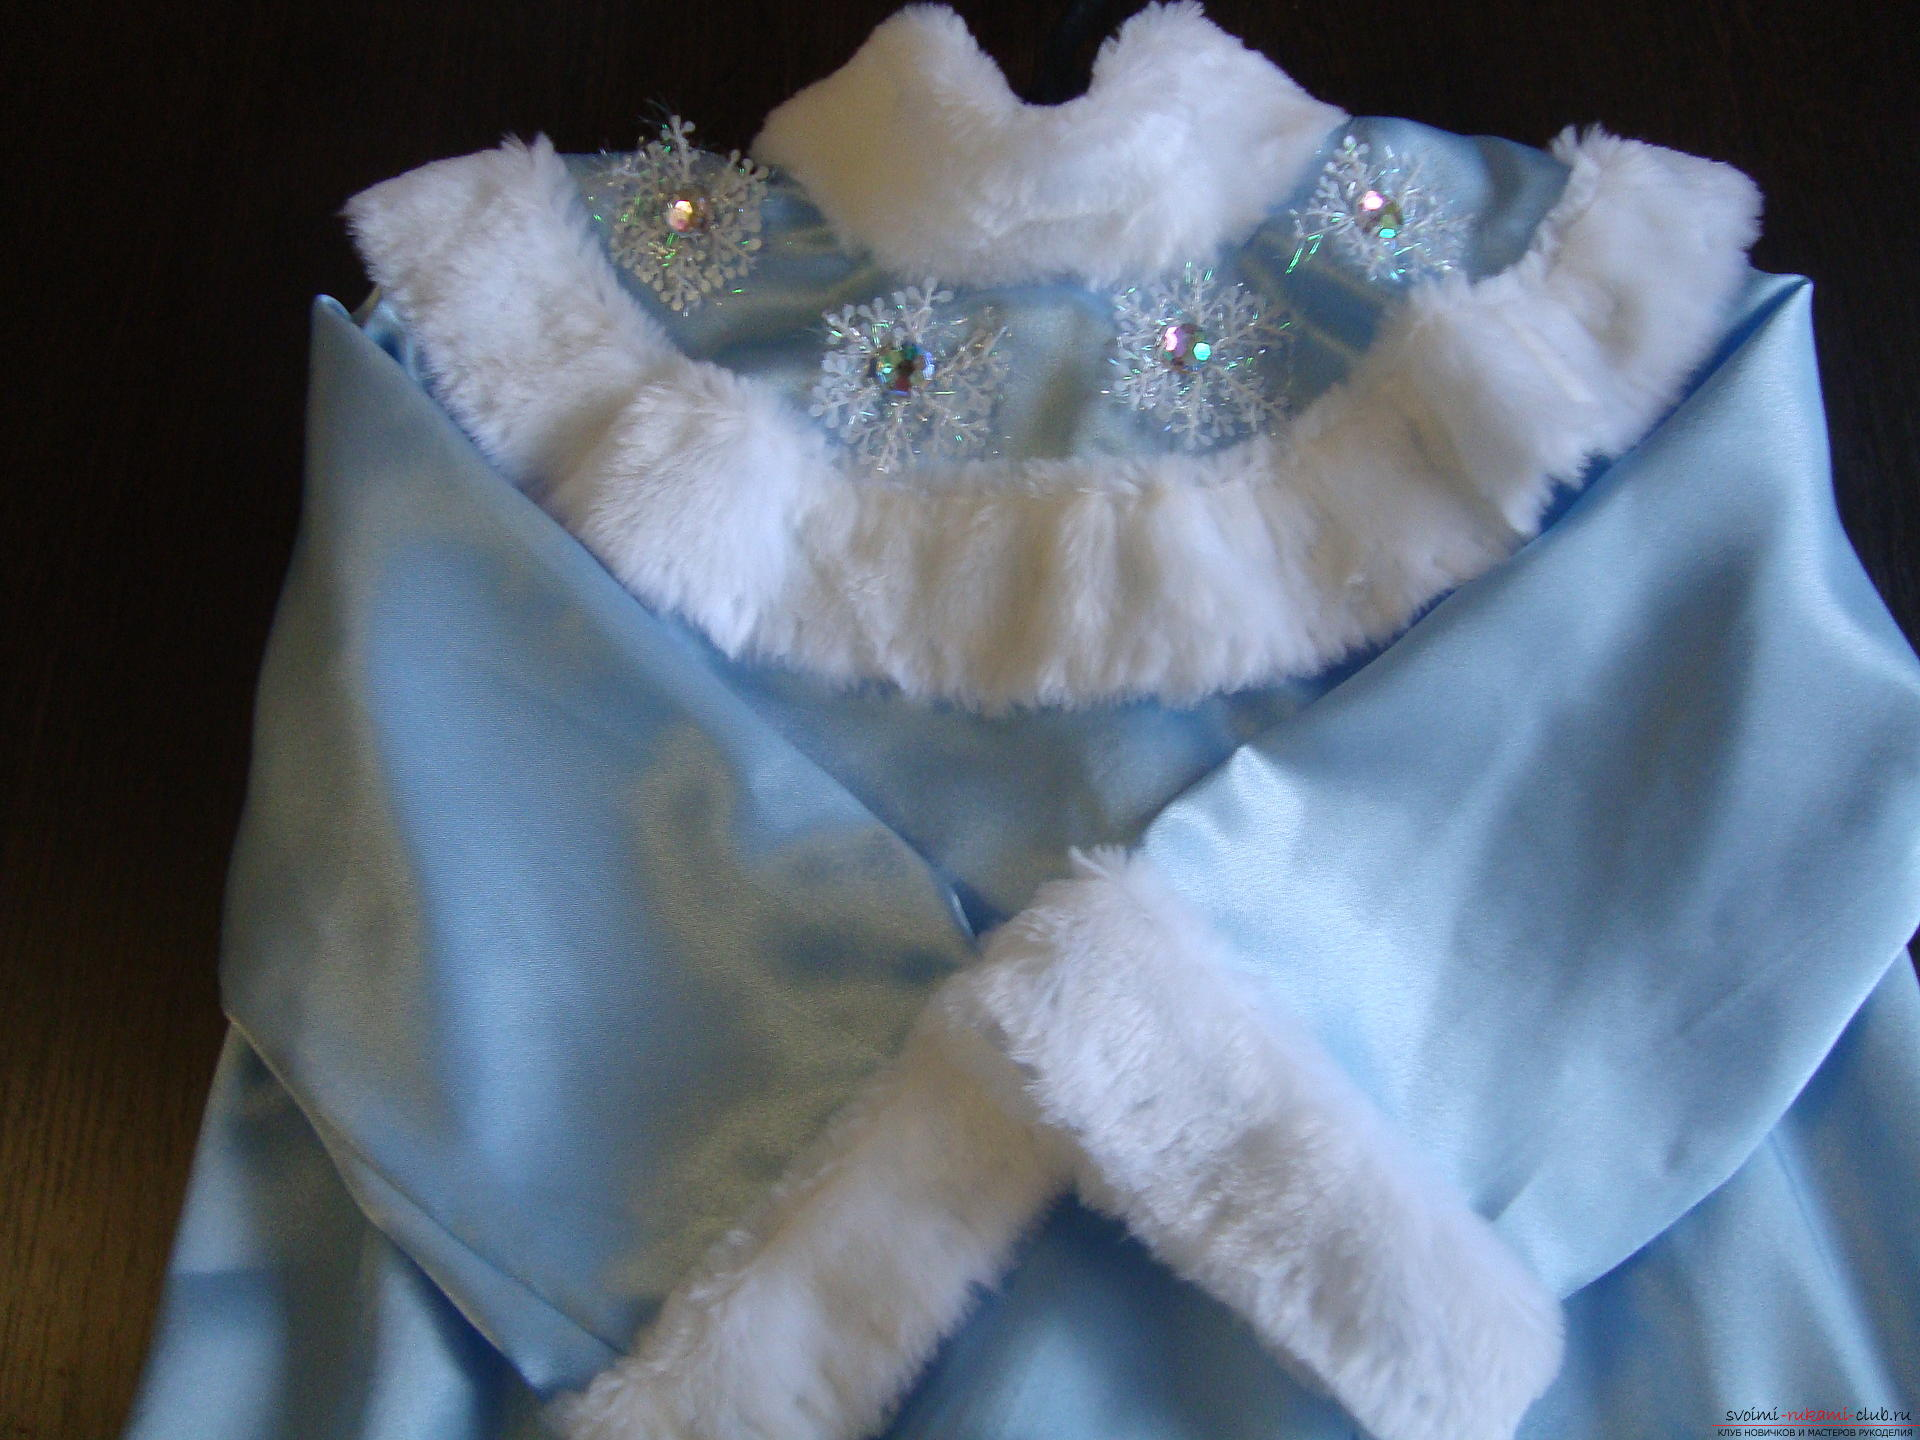 Carnival costumes for the girl's mother can sew by hand. The Snow Maiden costume will appeal to many girls .. Photo №5